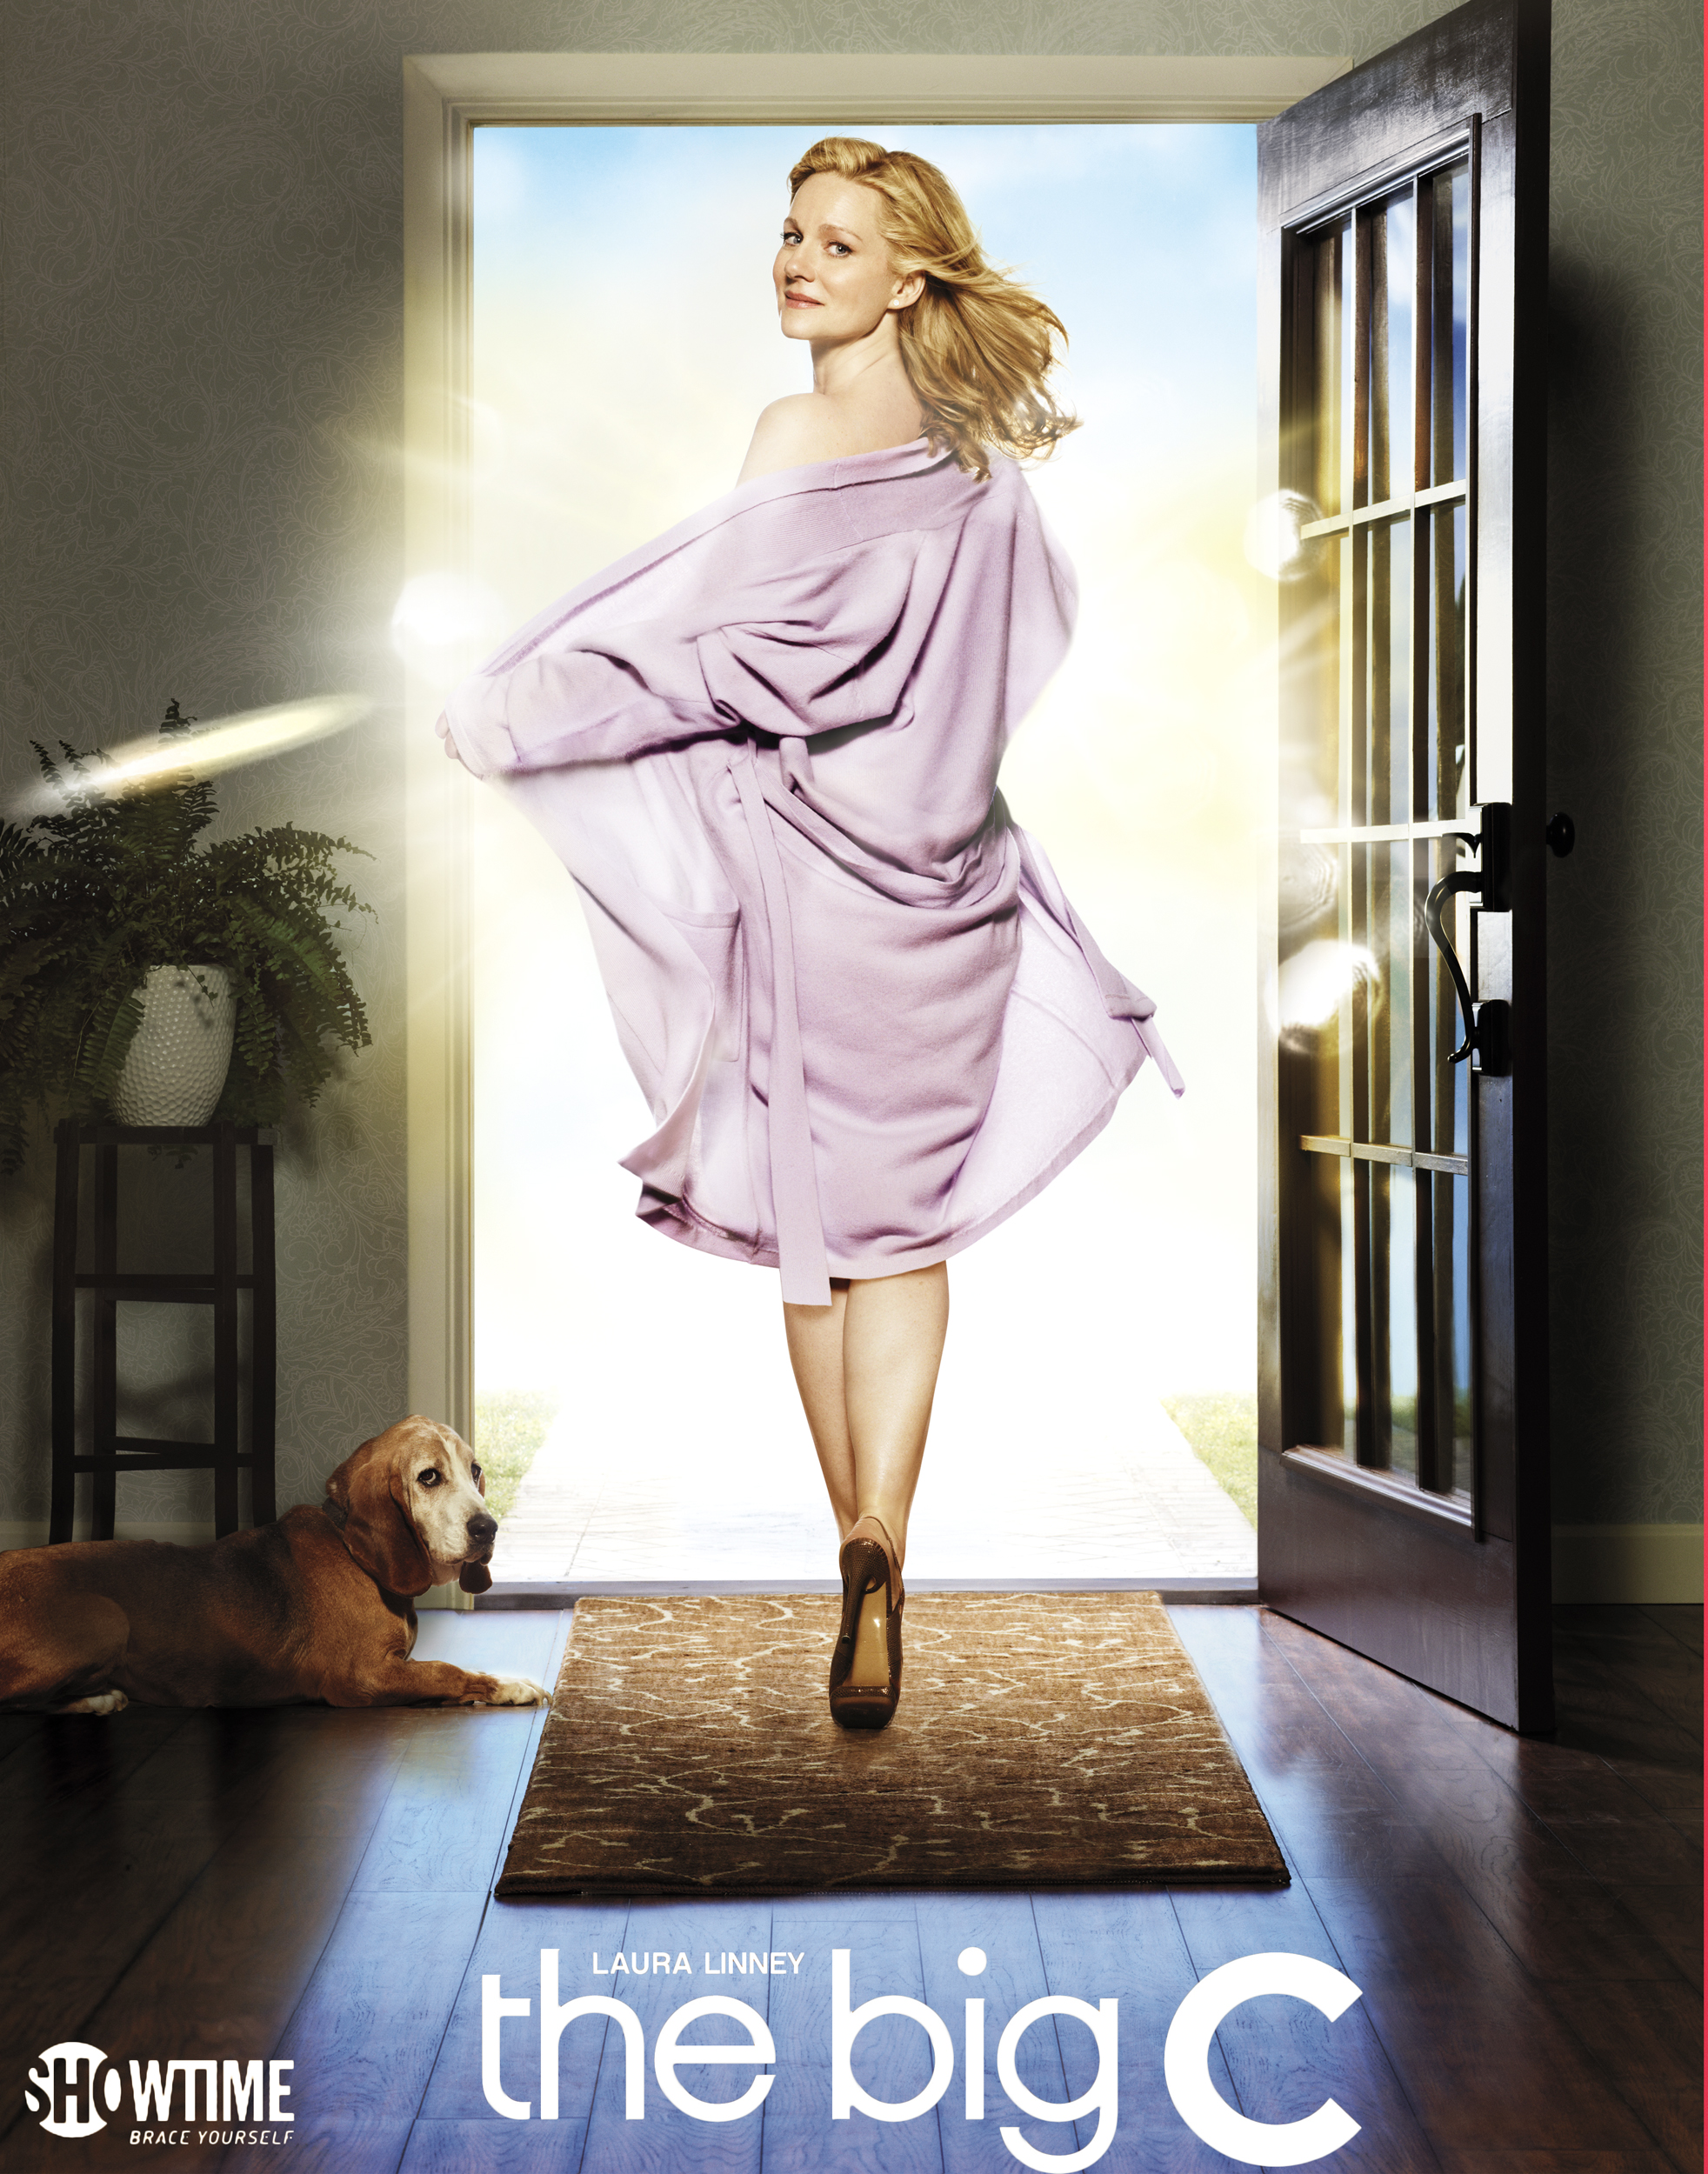 Laura LInney - The Big C Poster